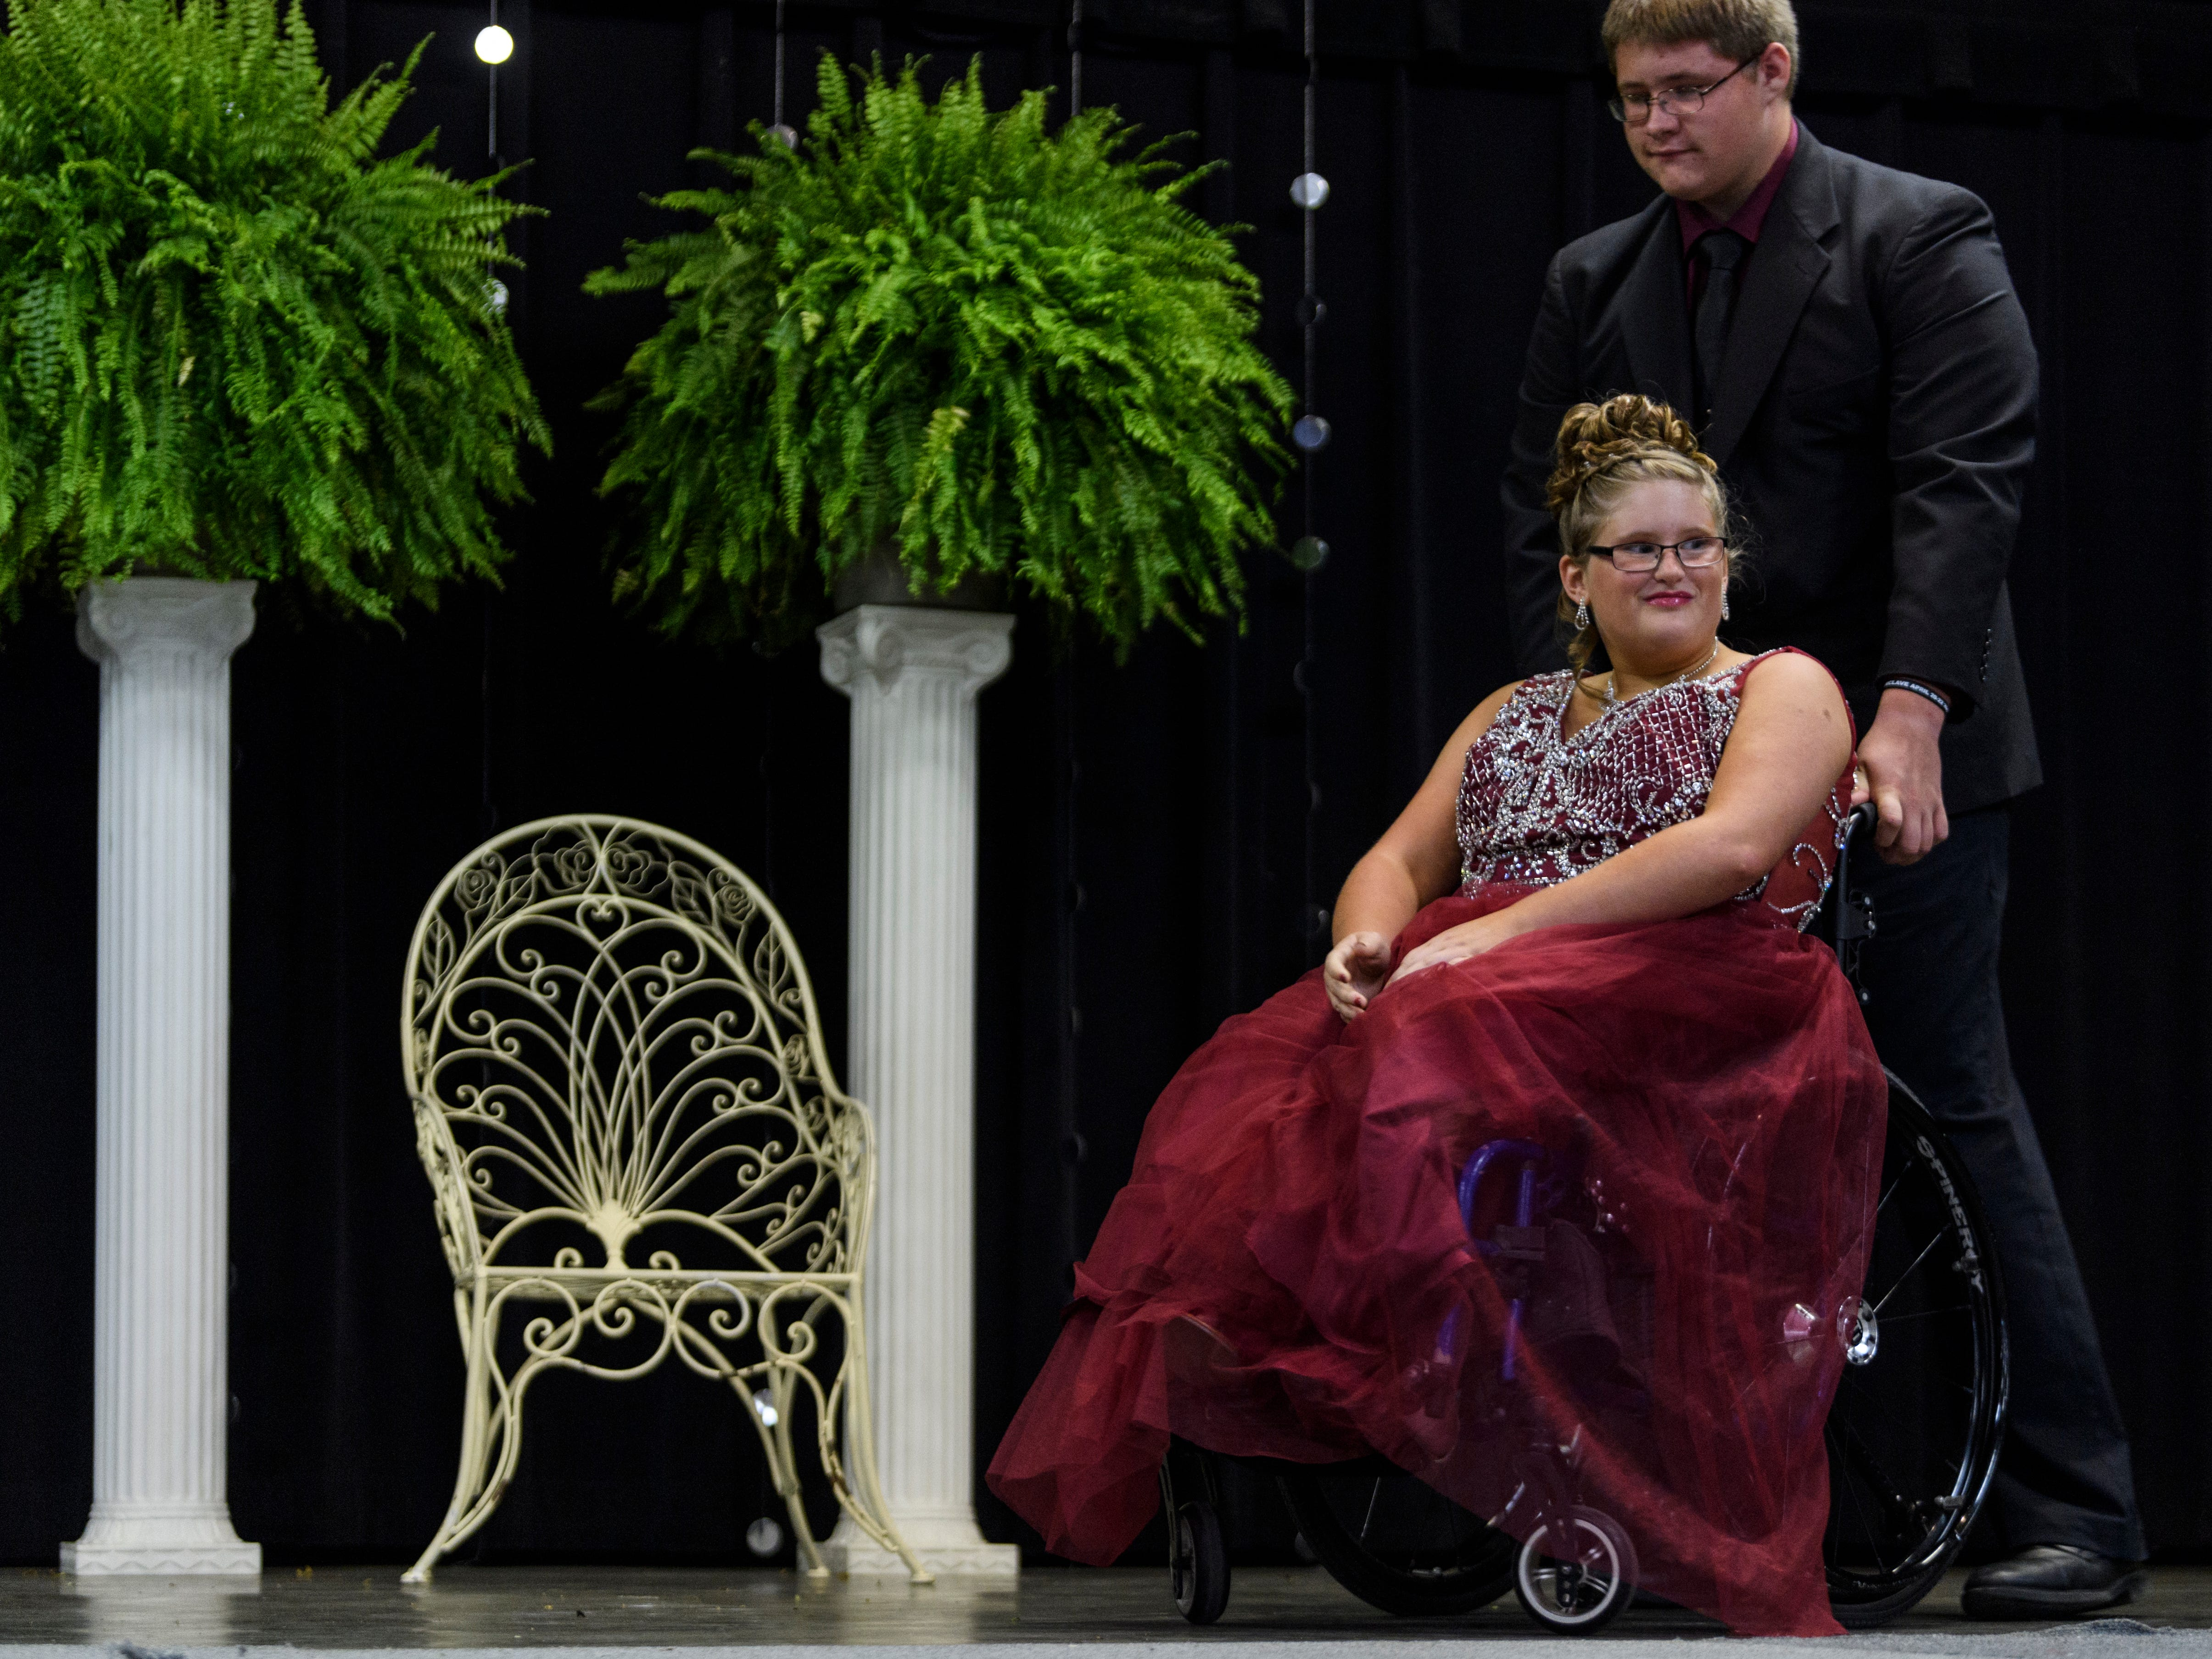 Ali Shanks is wheeled off stage by her escort Lucas Wolf after being introduced to the audience during the 2018 Miss Golden pageant at the Vanderburgh 4-H Center Auditorium in Evansville, Ind., Saturday evening, July 28, 2018.